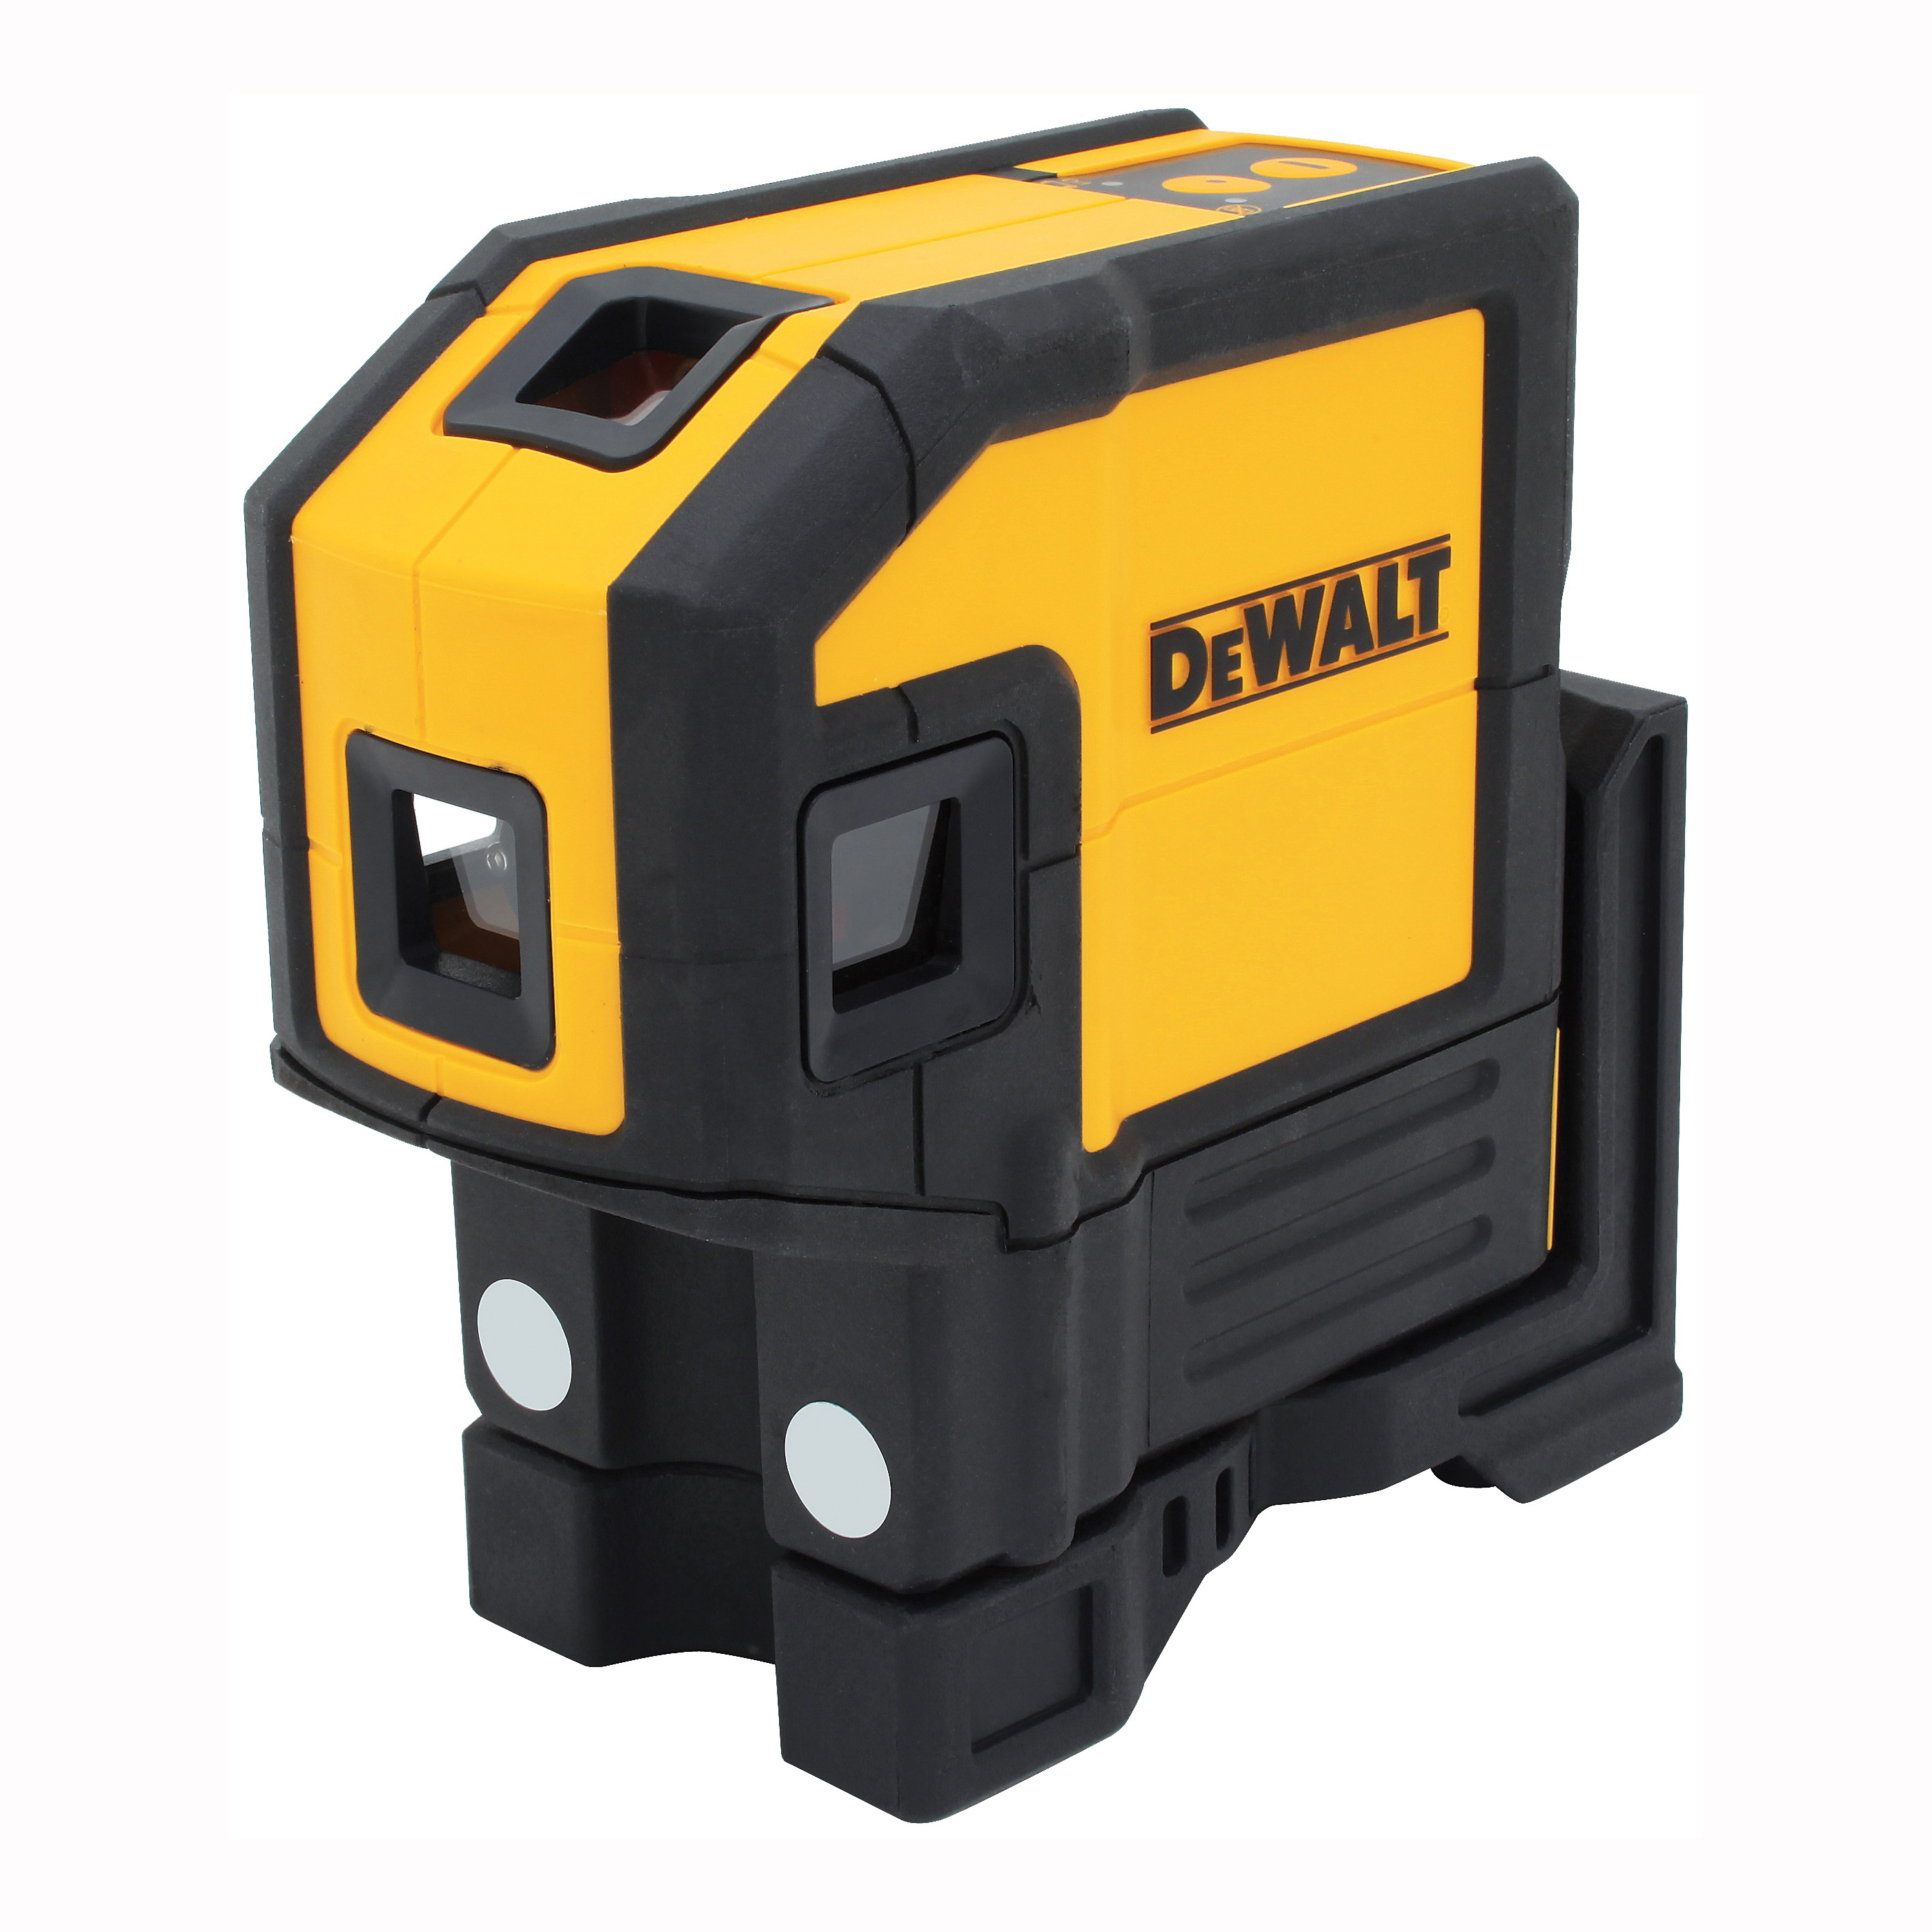 Picture of DeWALT DW0851 Laser Level, 165 ft, +/-1/8 in at 100 ft Accuracy, 5 -Dot, Red Laser